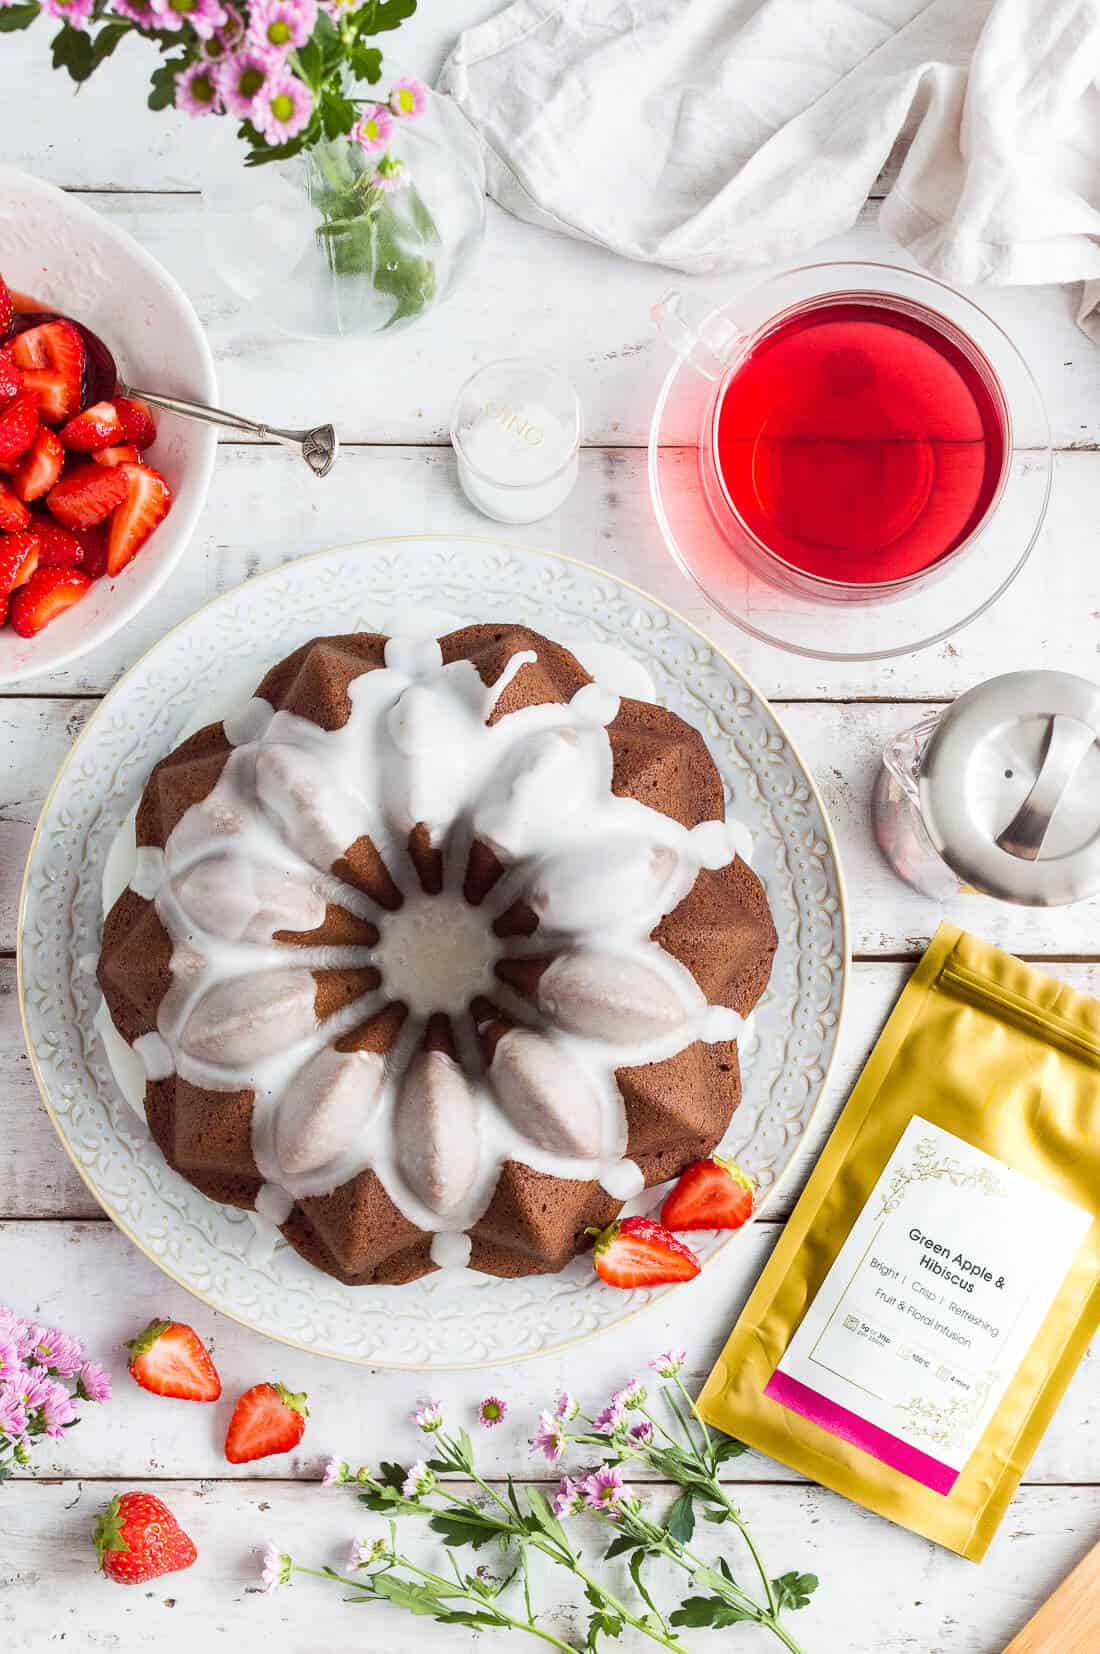 Vegan ginger bundt cake with lime glaze and macerated strawberries paired with JING Green Apple and Hibiscus herbal tea.